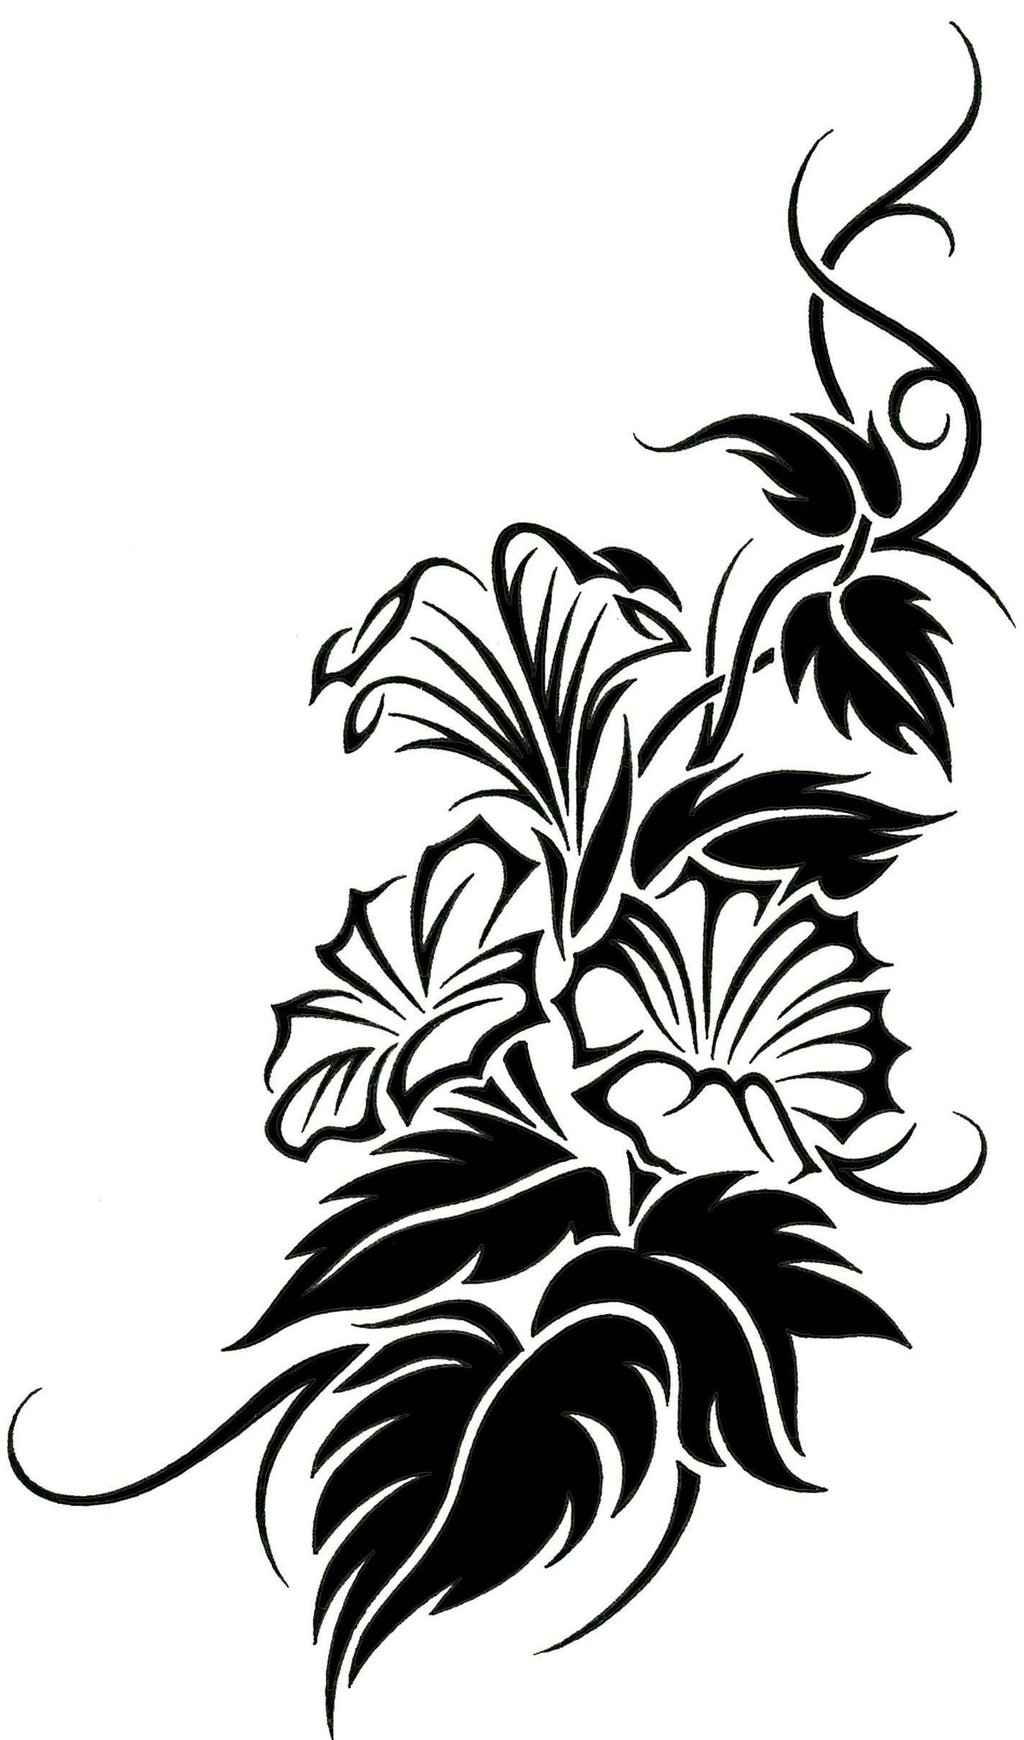 33575637c DeviantART: More Like Floral Tribal Vine Tattoo Design By JSHarts ...